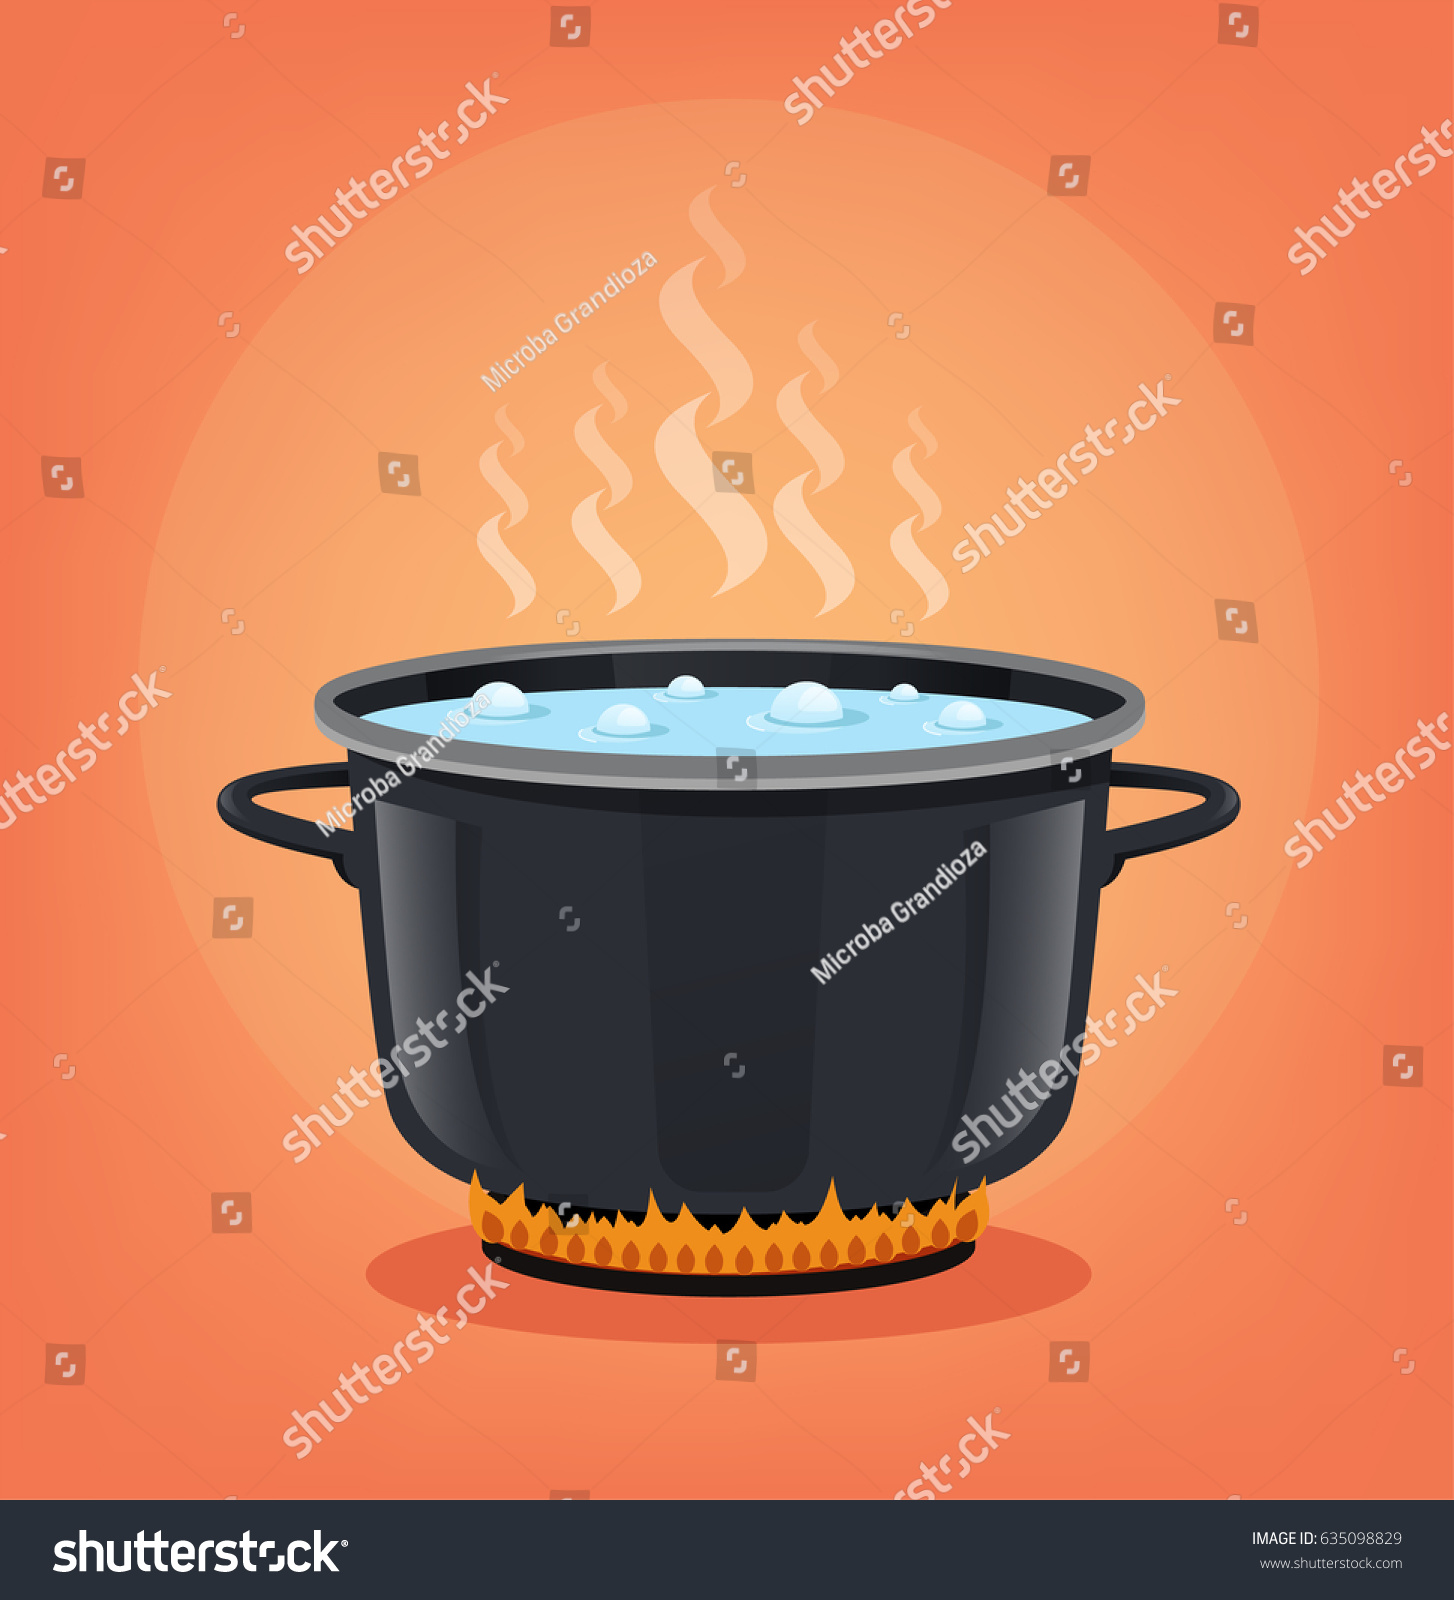 Boiling Water Black Pan Cooking Concept Stock Vector ...